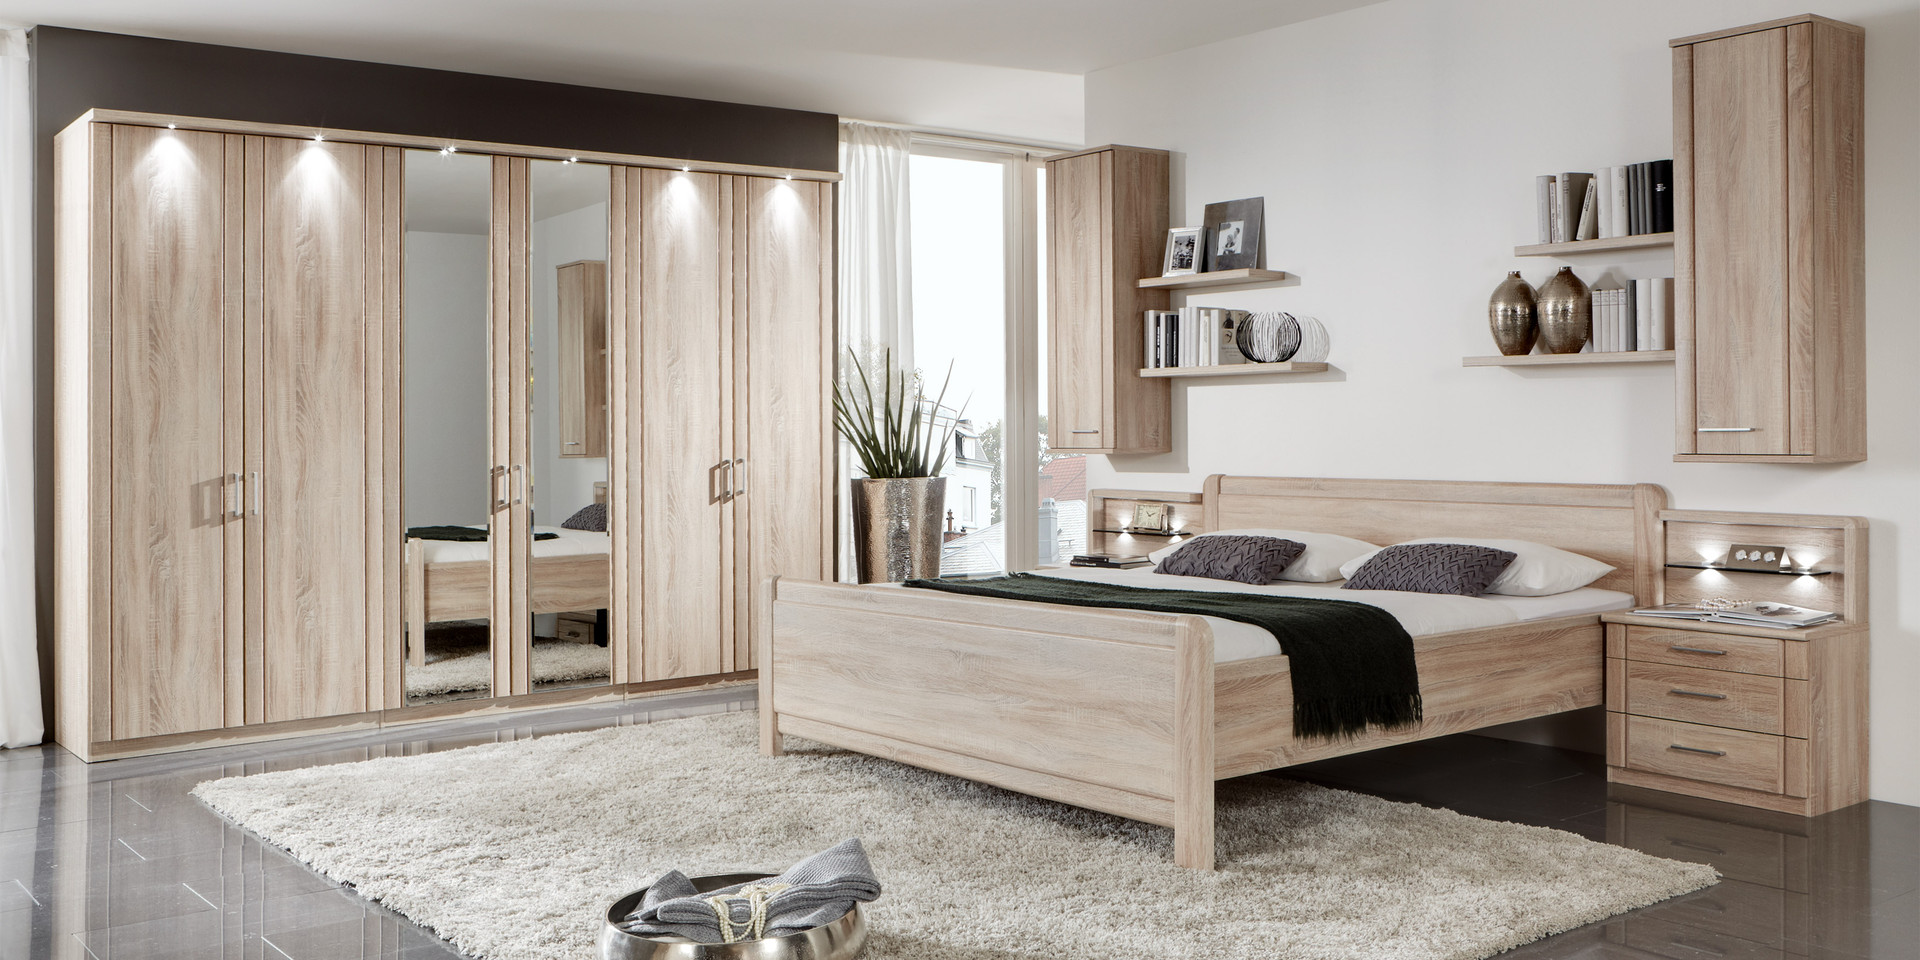 wohnzimmer wei hochglanz. Black Bedroom Furniture Sets. Home Design Ideas